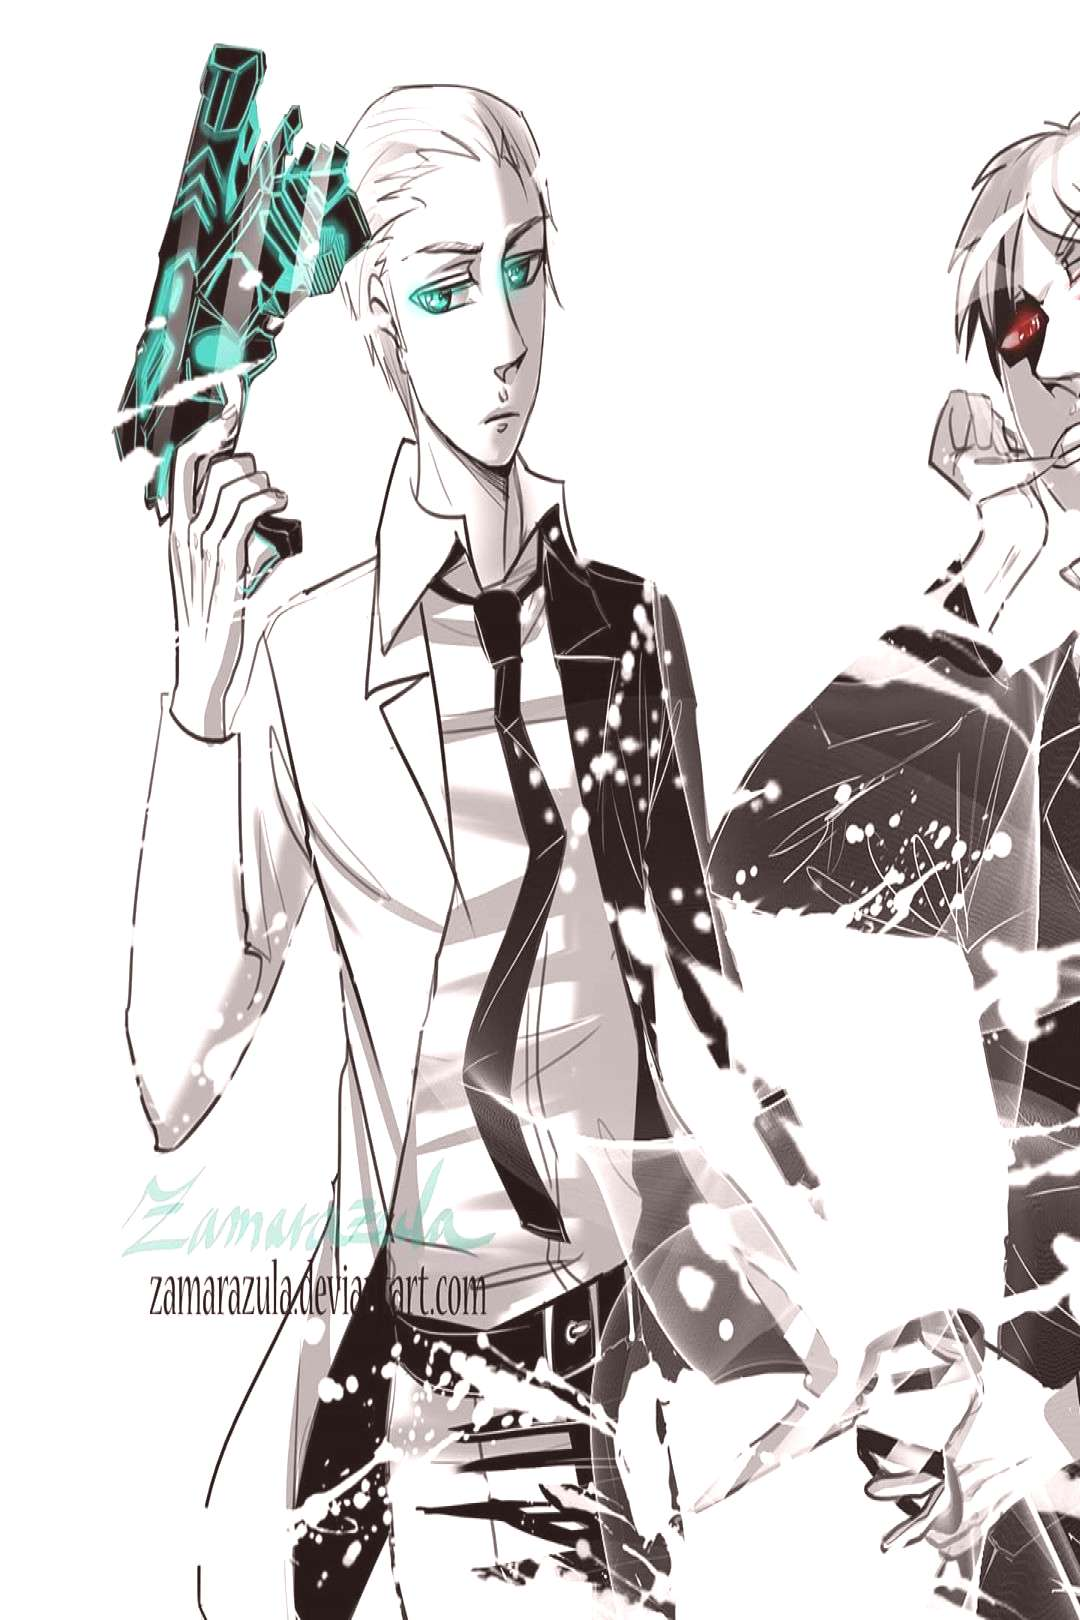 A crossover of Hetalia with Psycho pass, Black butler, Tokyo Ghou